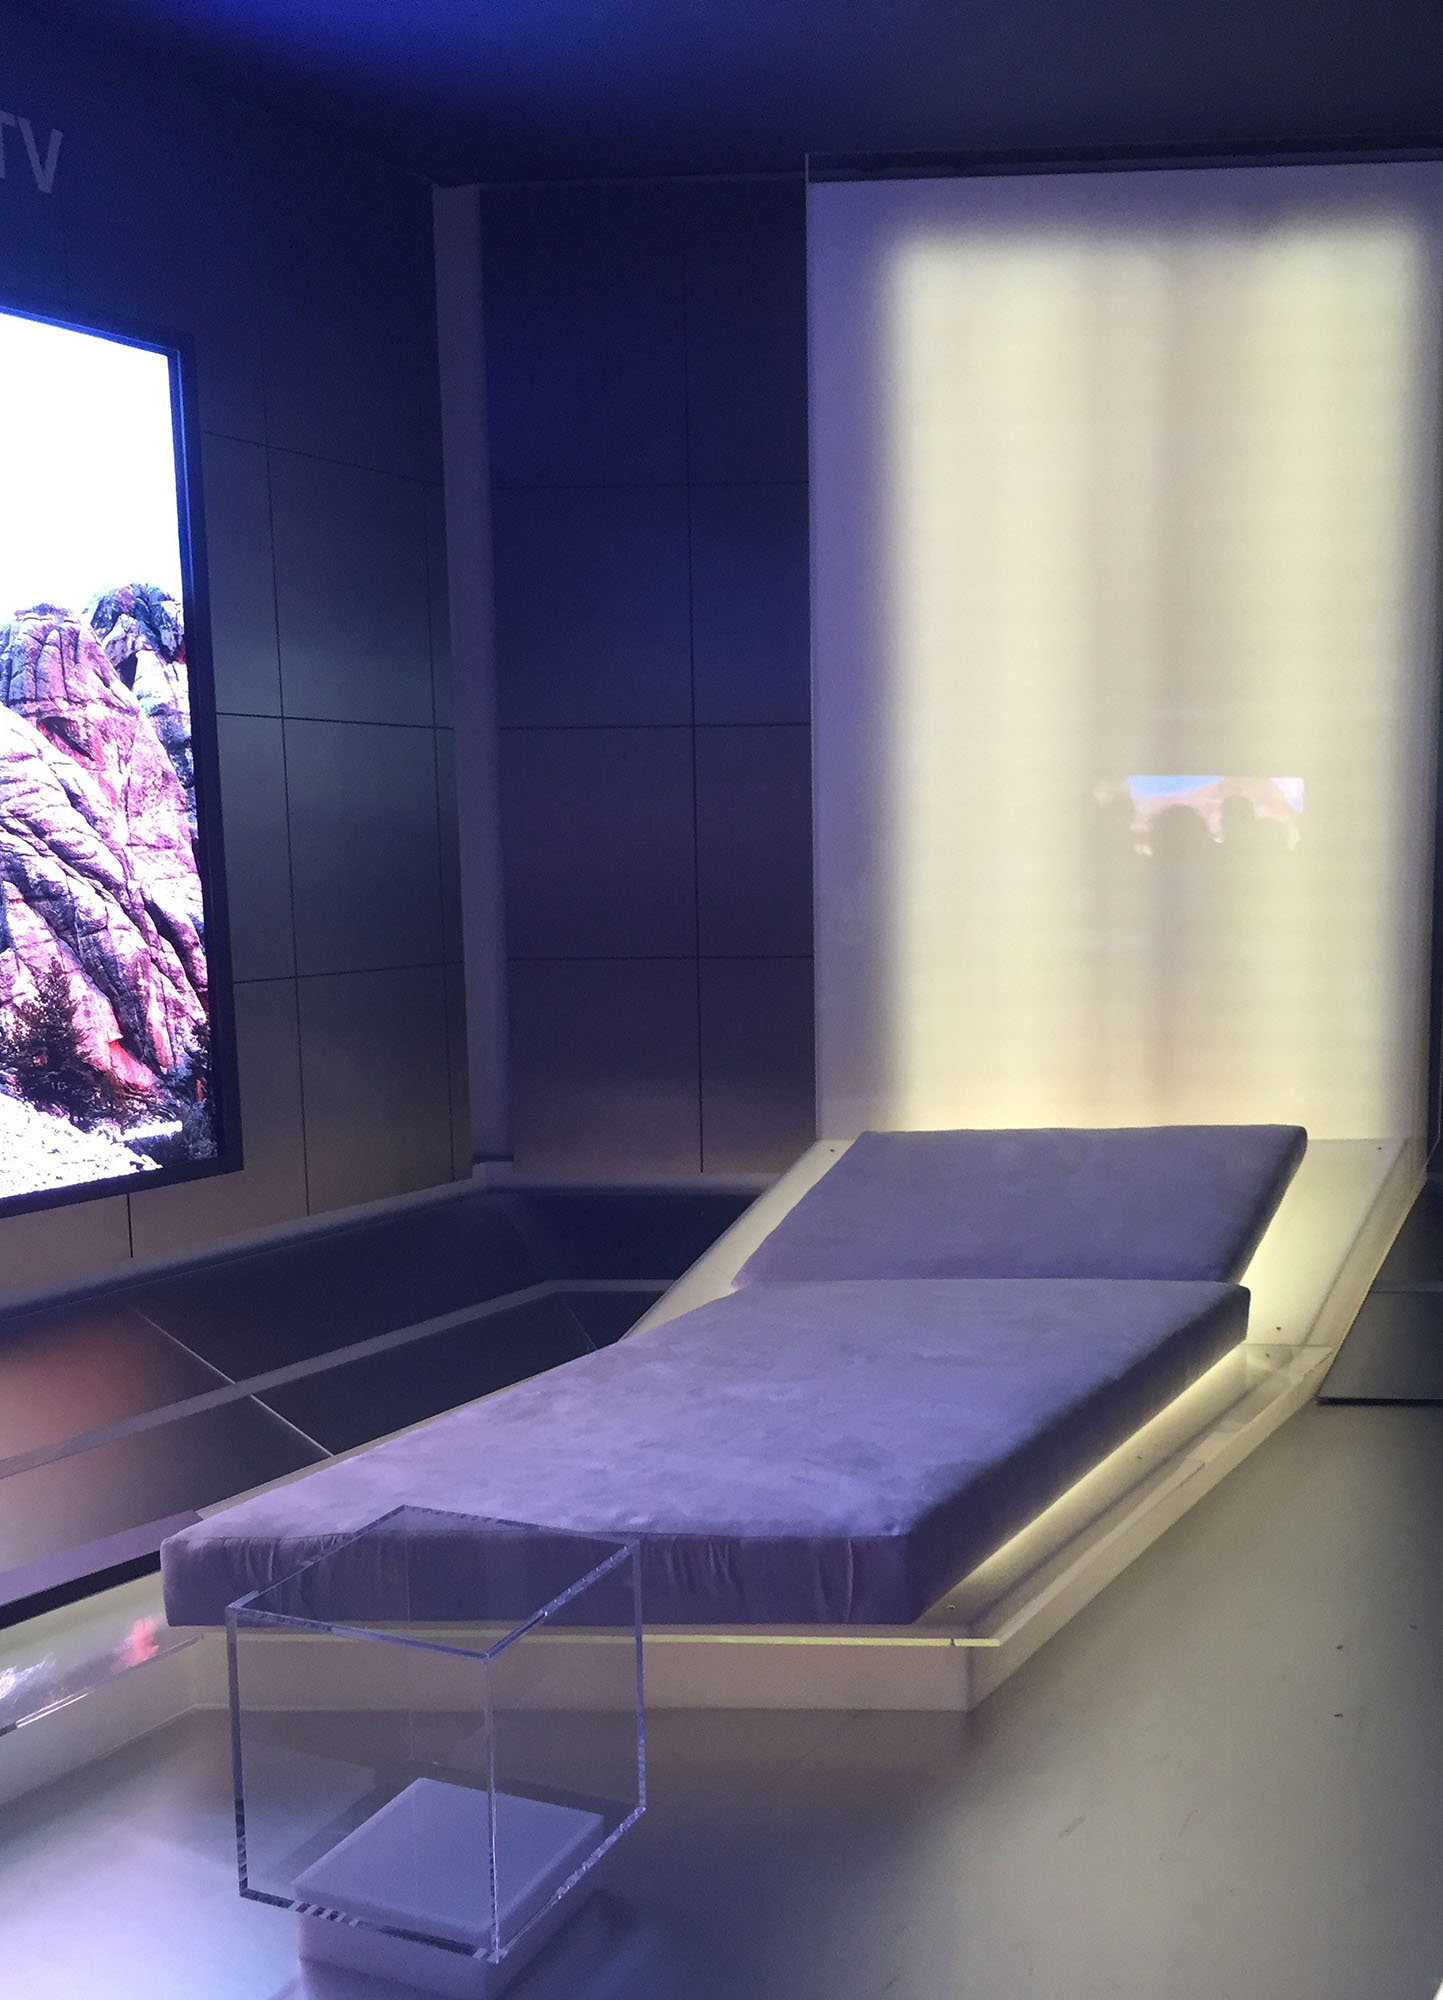 Plastic Samsung CES Bed & Seat Display